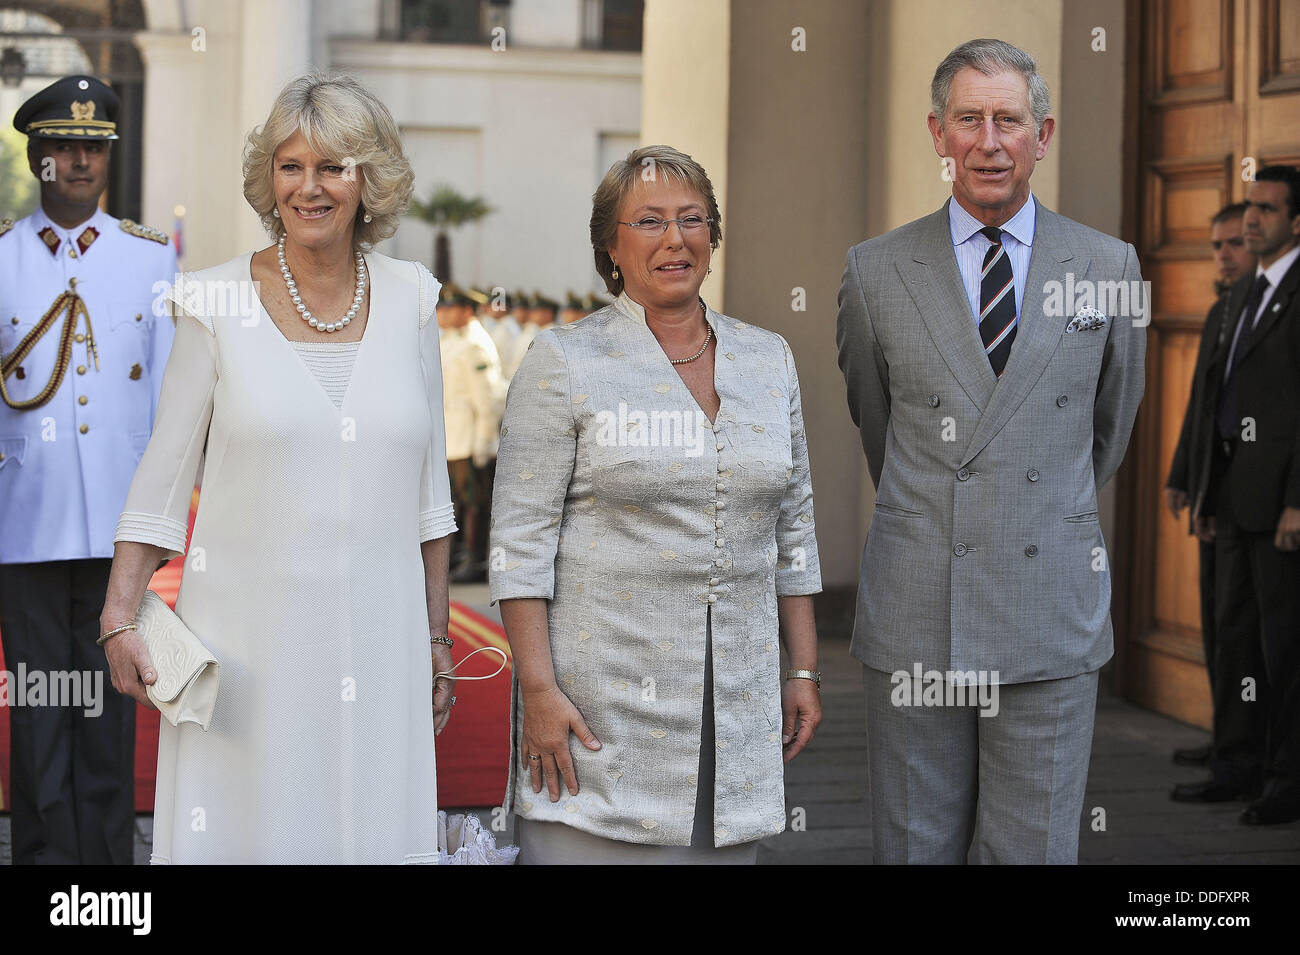 Santiago Chile march 09 2009 Prince Charles of England with the Duchess of Cornwall will meet with President Michelle Stock Photo